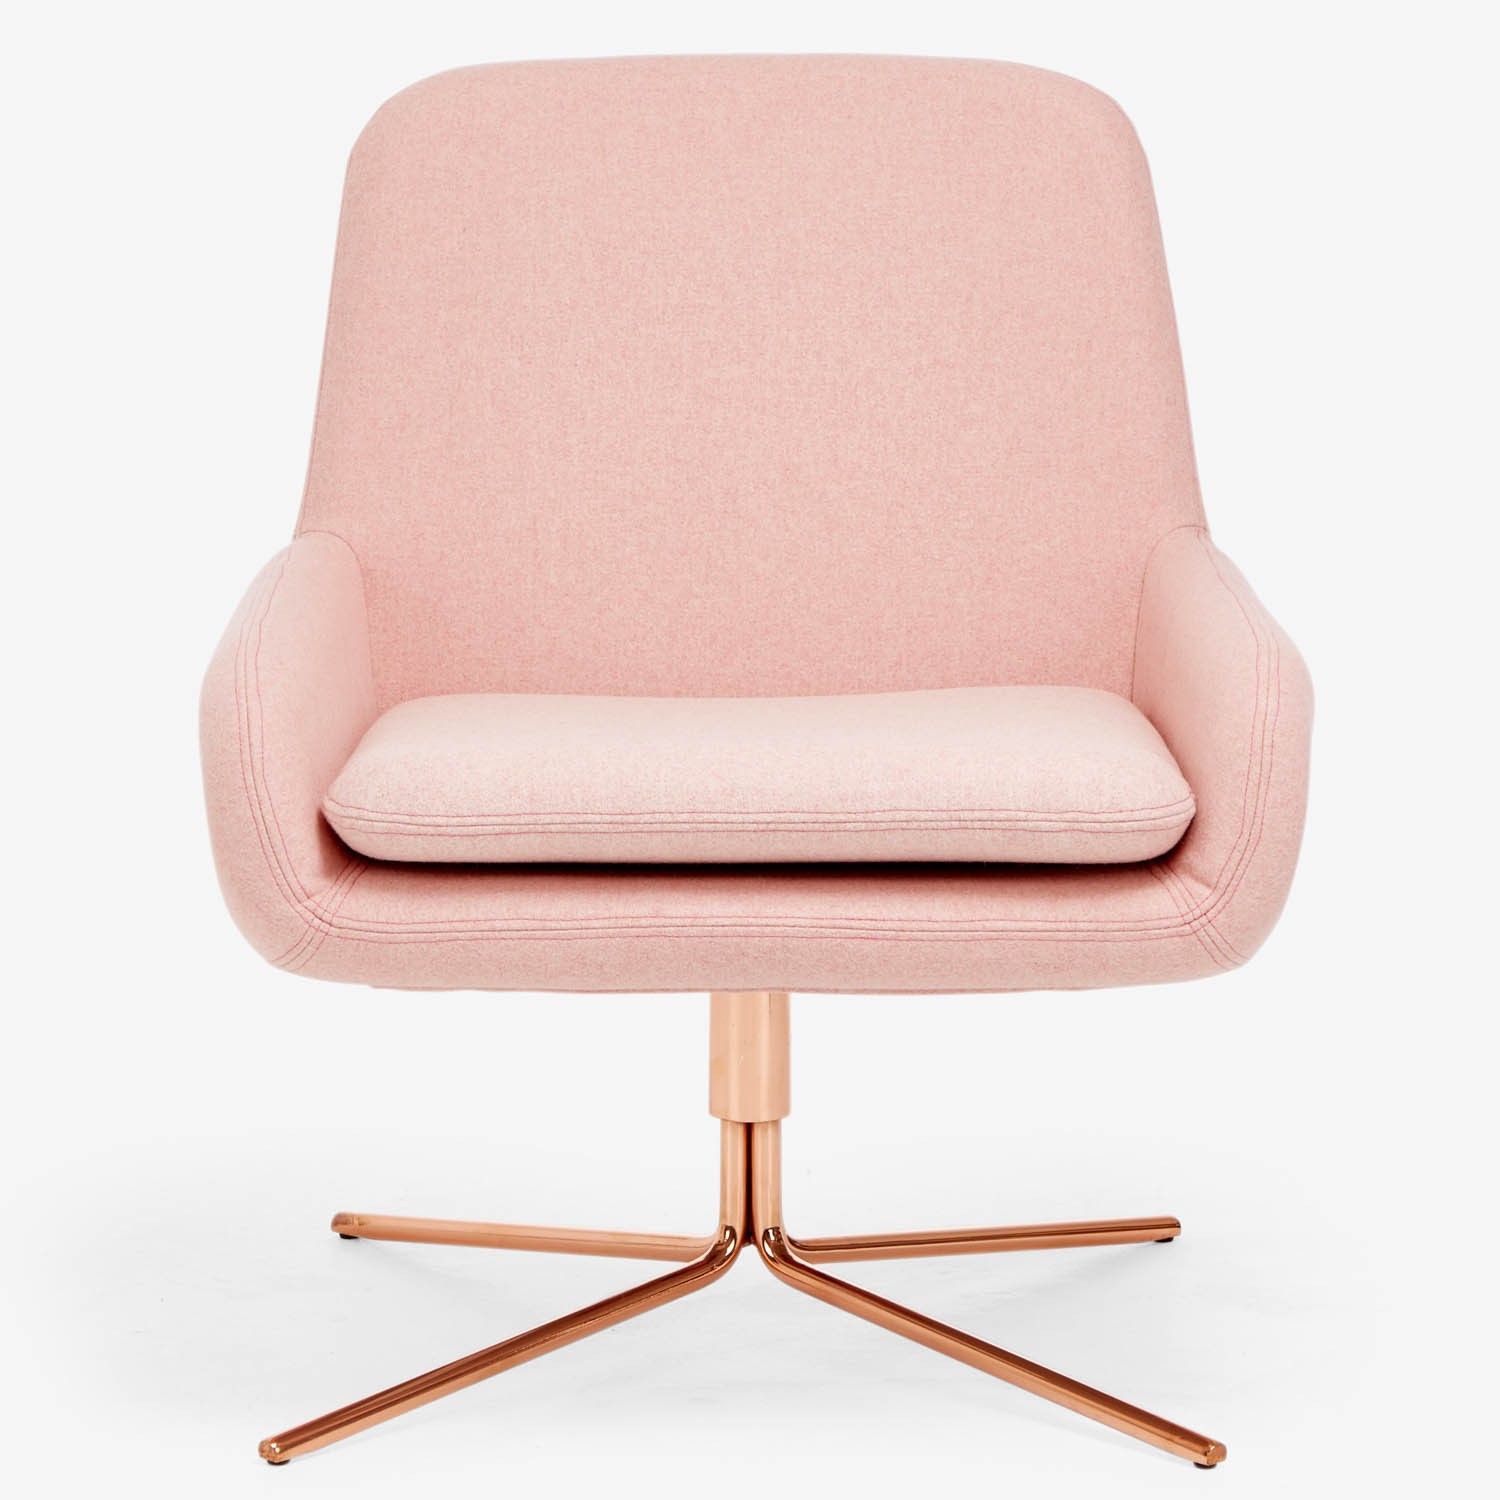 Drawing inspiration from midcentury modern styles